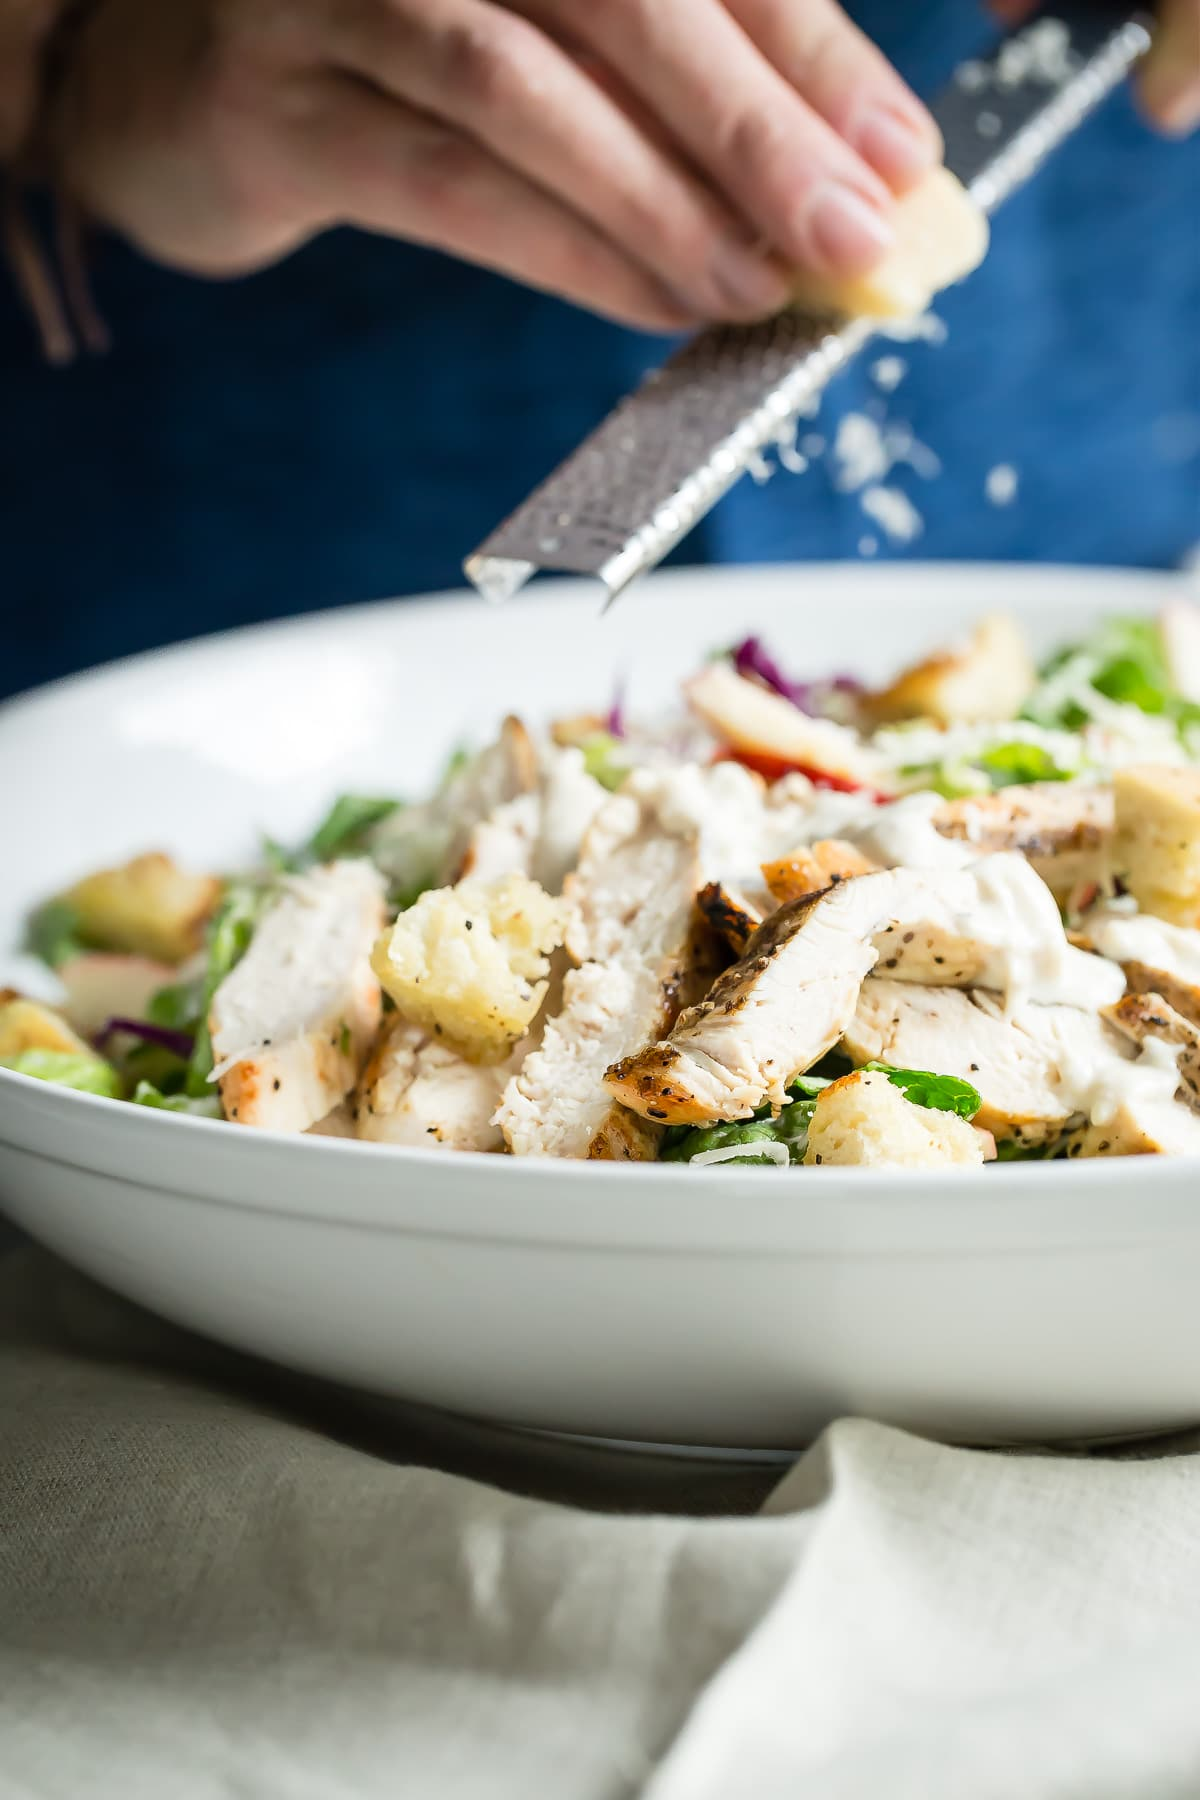 Chunks of grilled chicken, apple, and red cabbage are tossed with a homemade Caesar Salad dressing